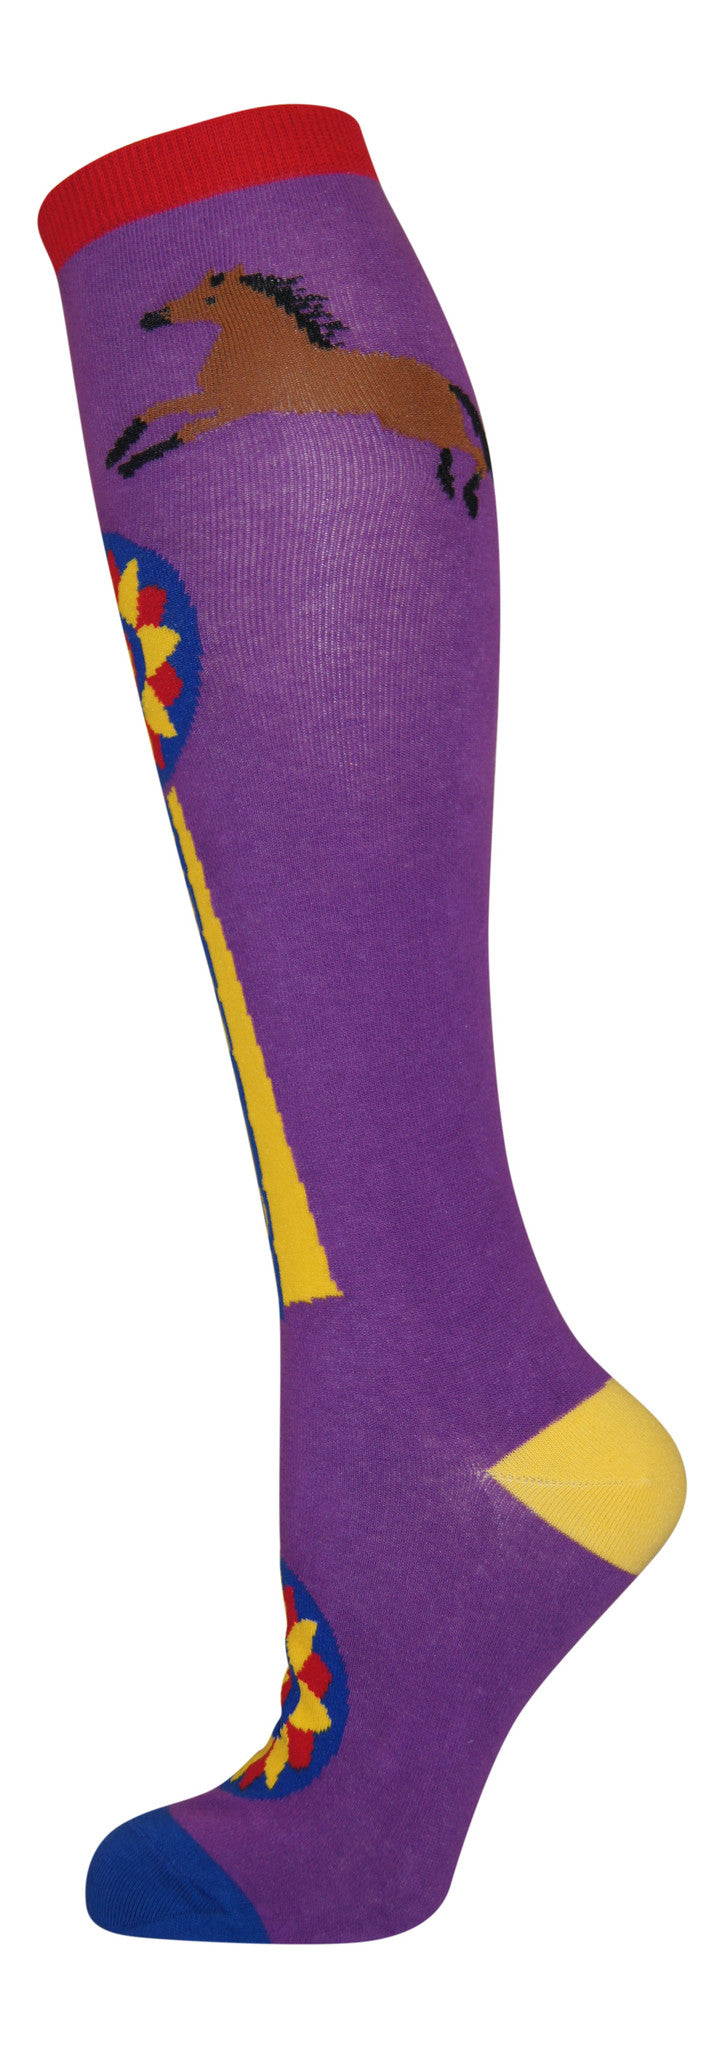 """Champion"" cotton-rich knee sock from lucky7socks.com"